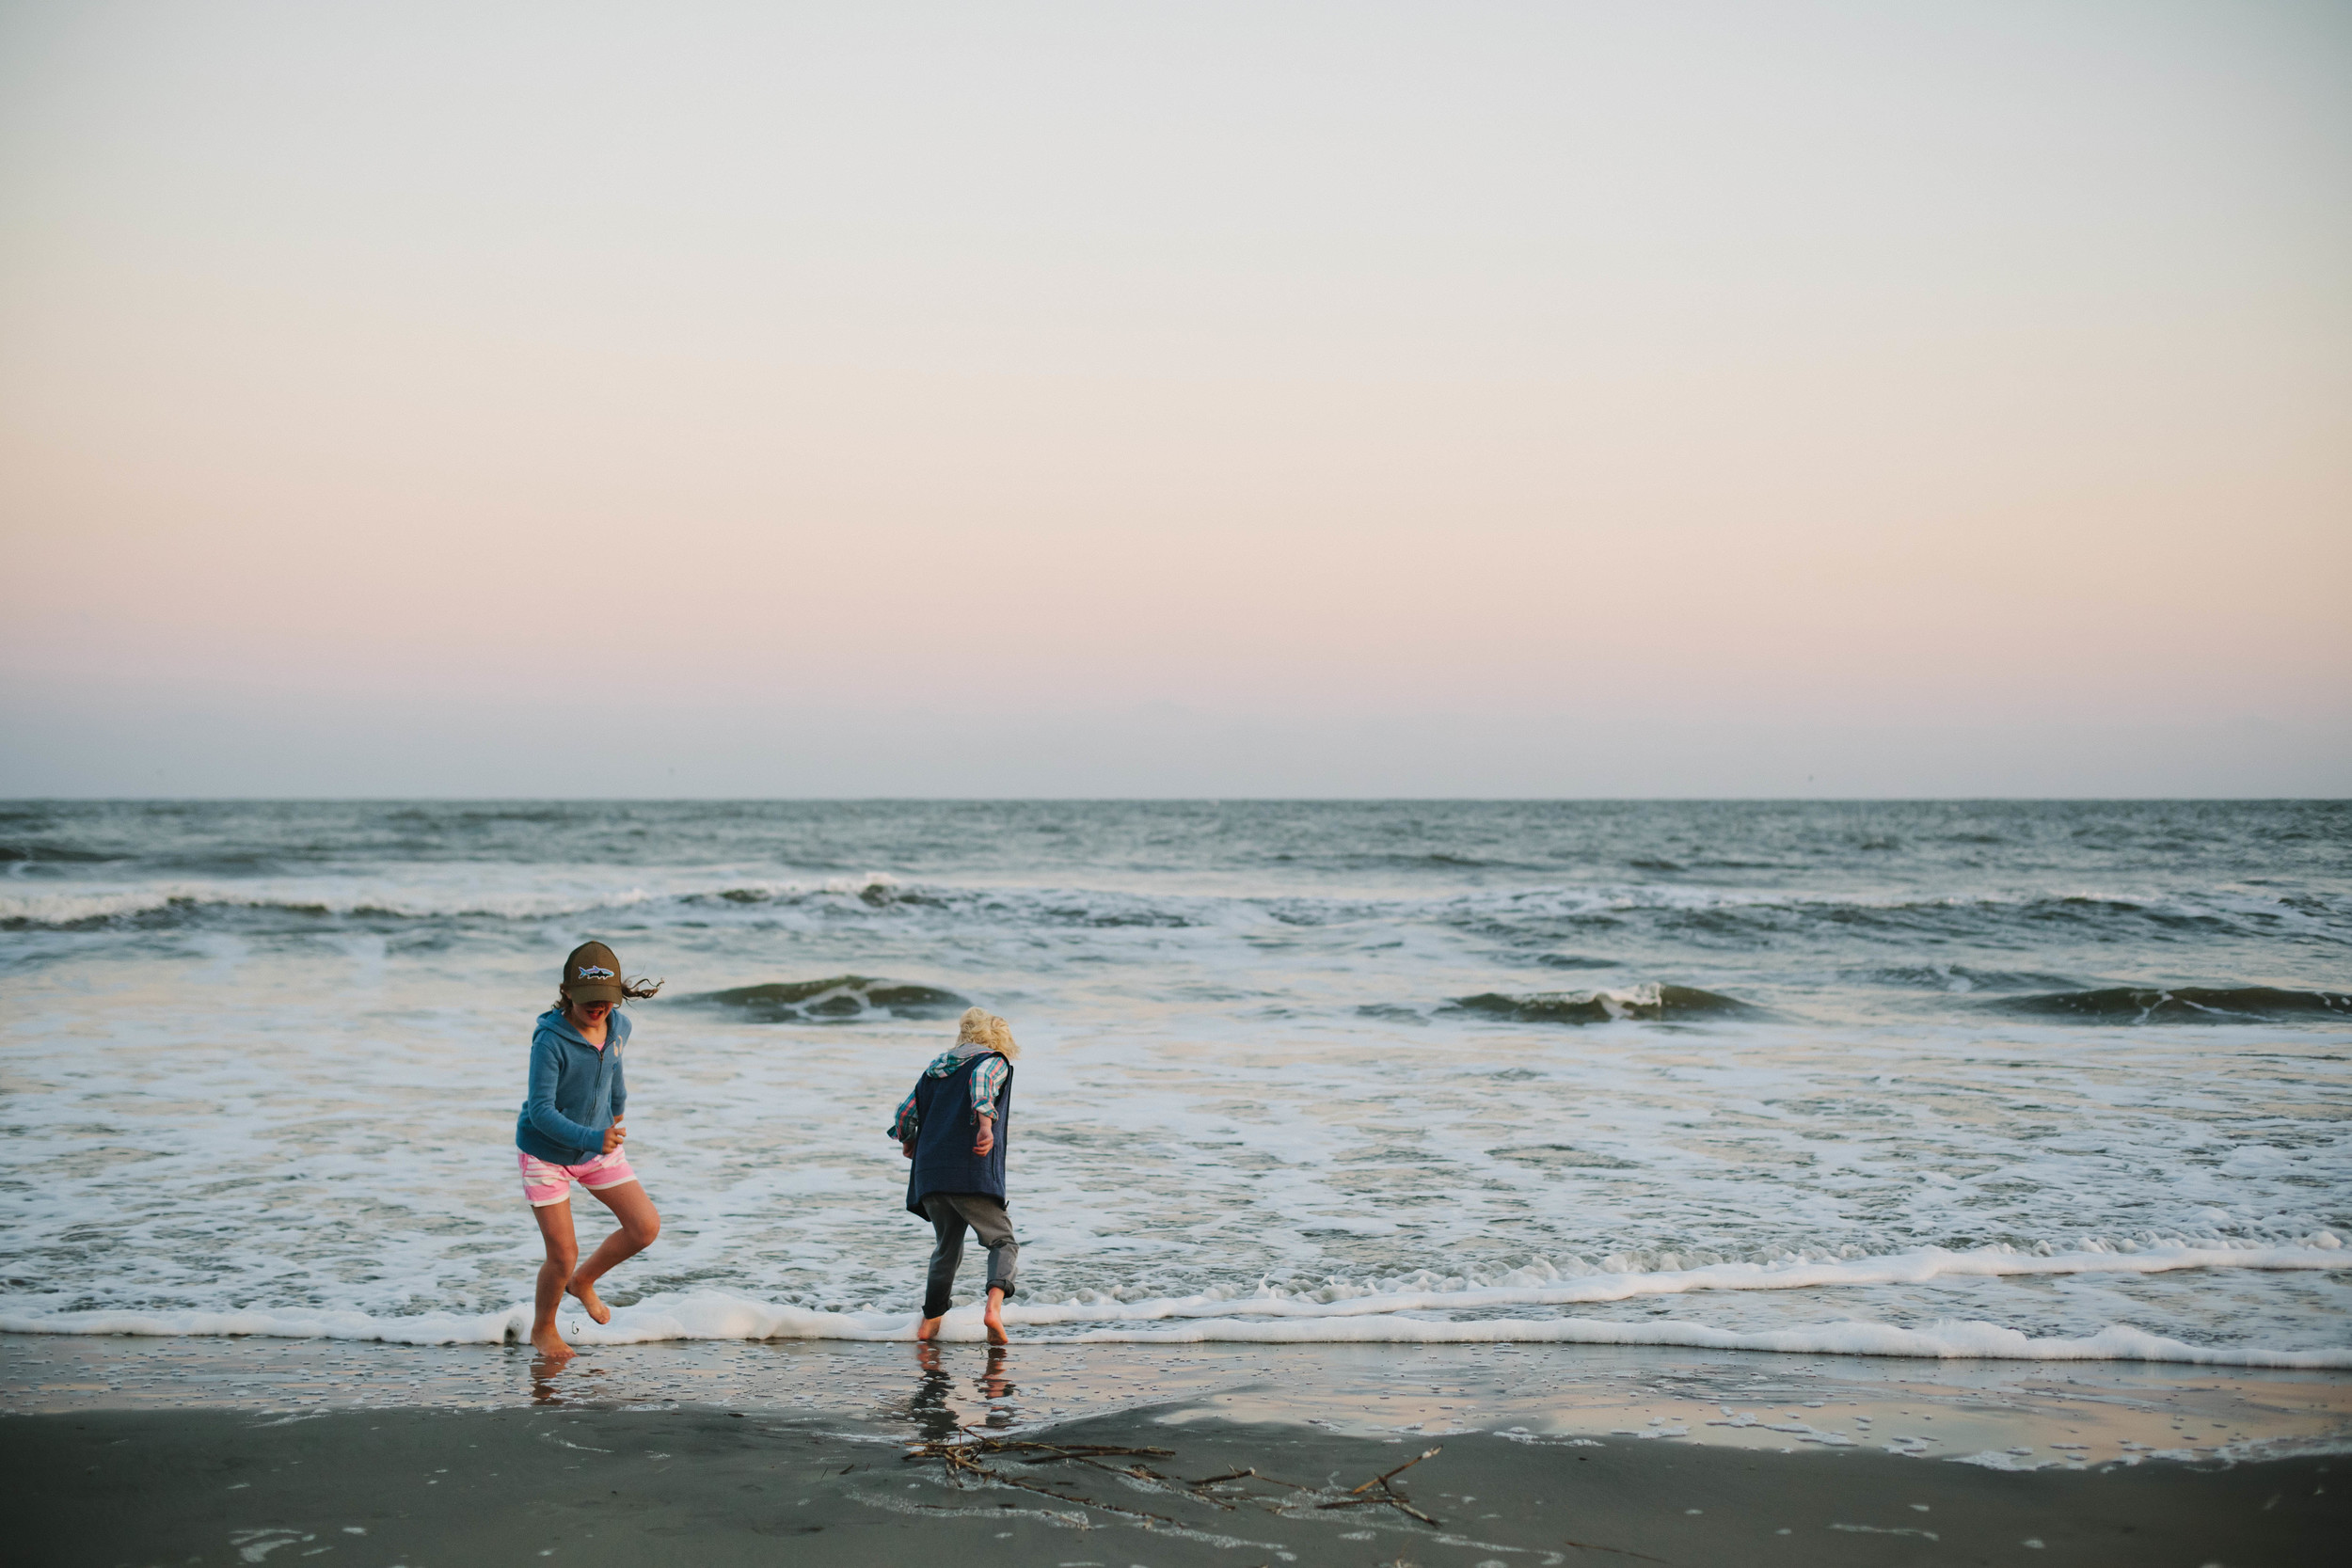 Image of boy and girl playing in the waves at the beach